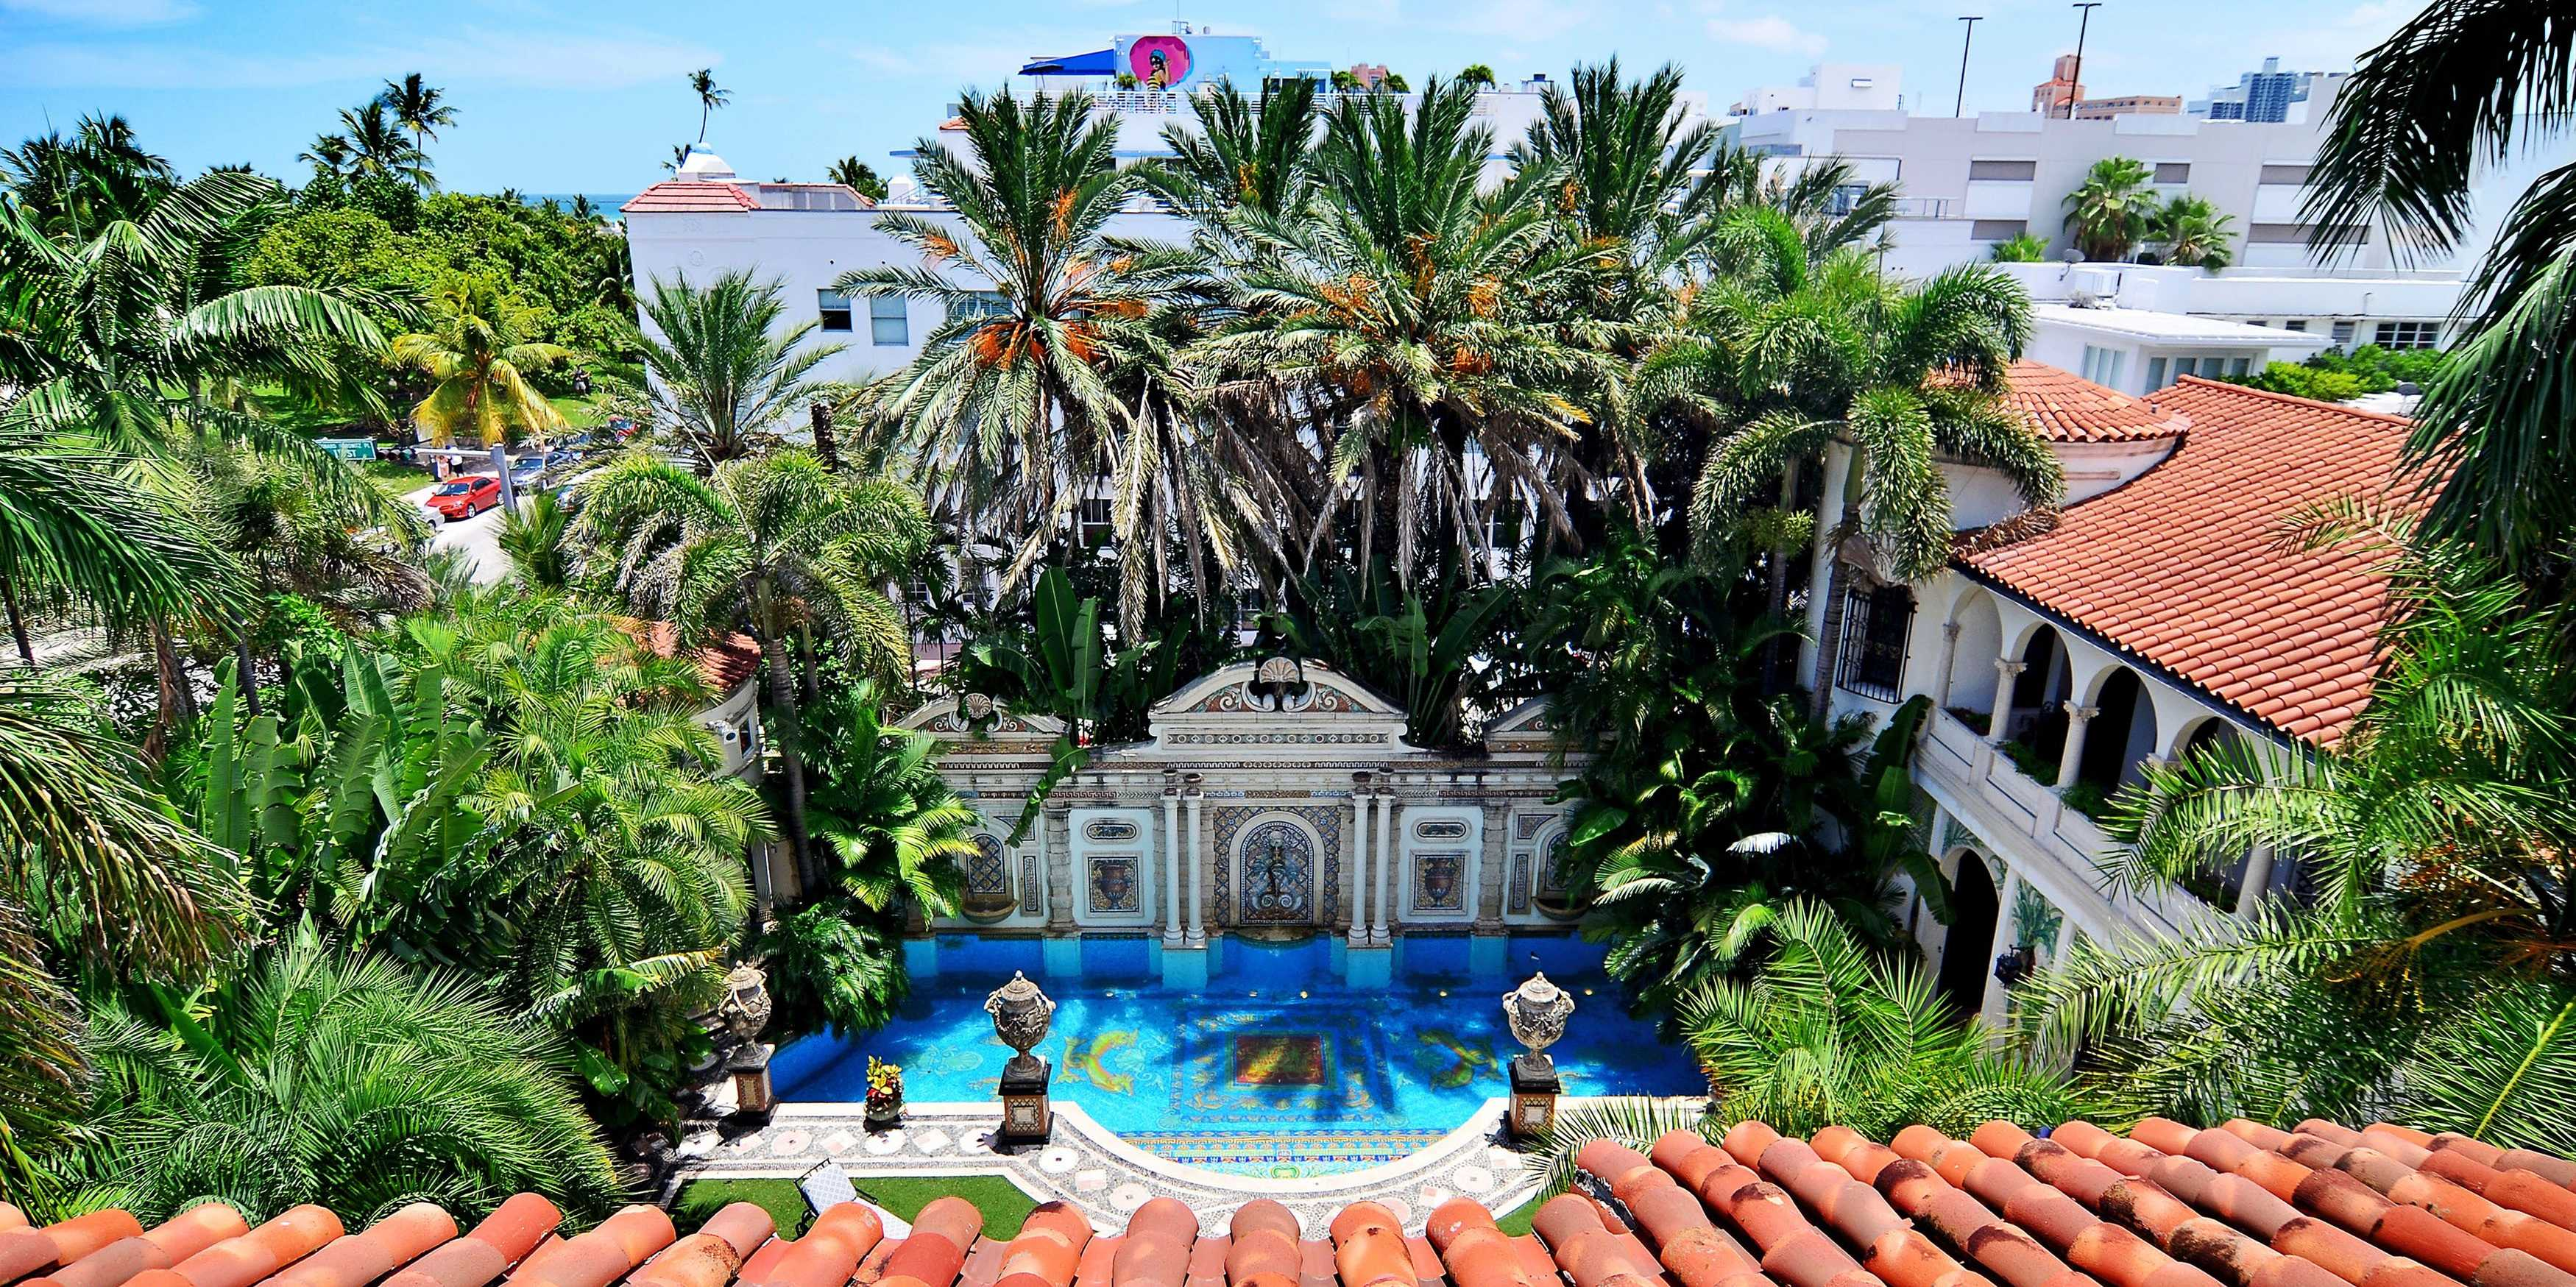 new-photos-of-the-opulent-versace-mansion-in-miami